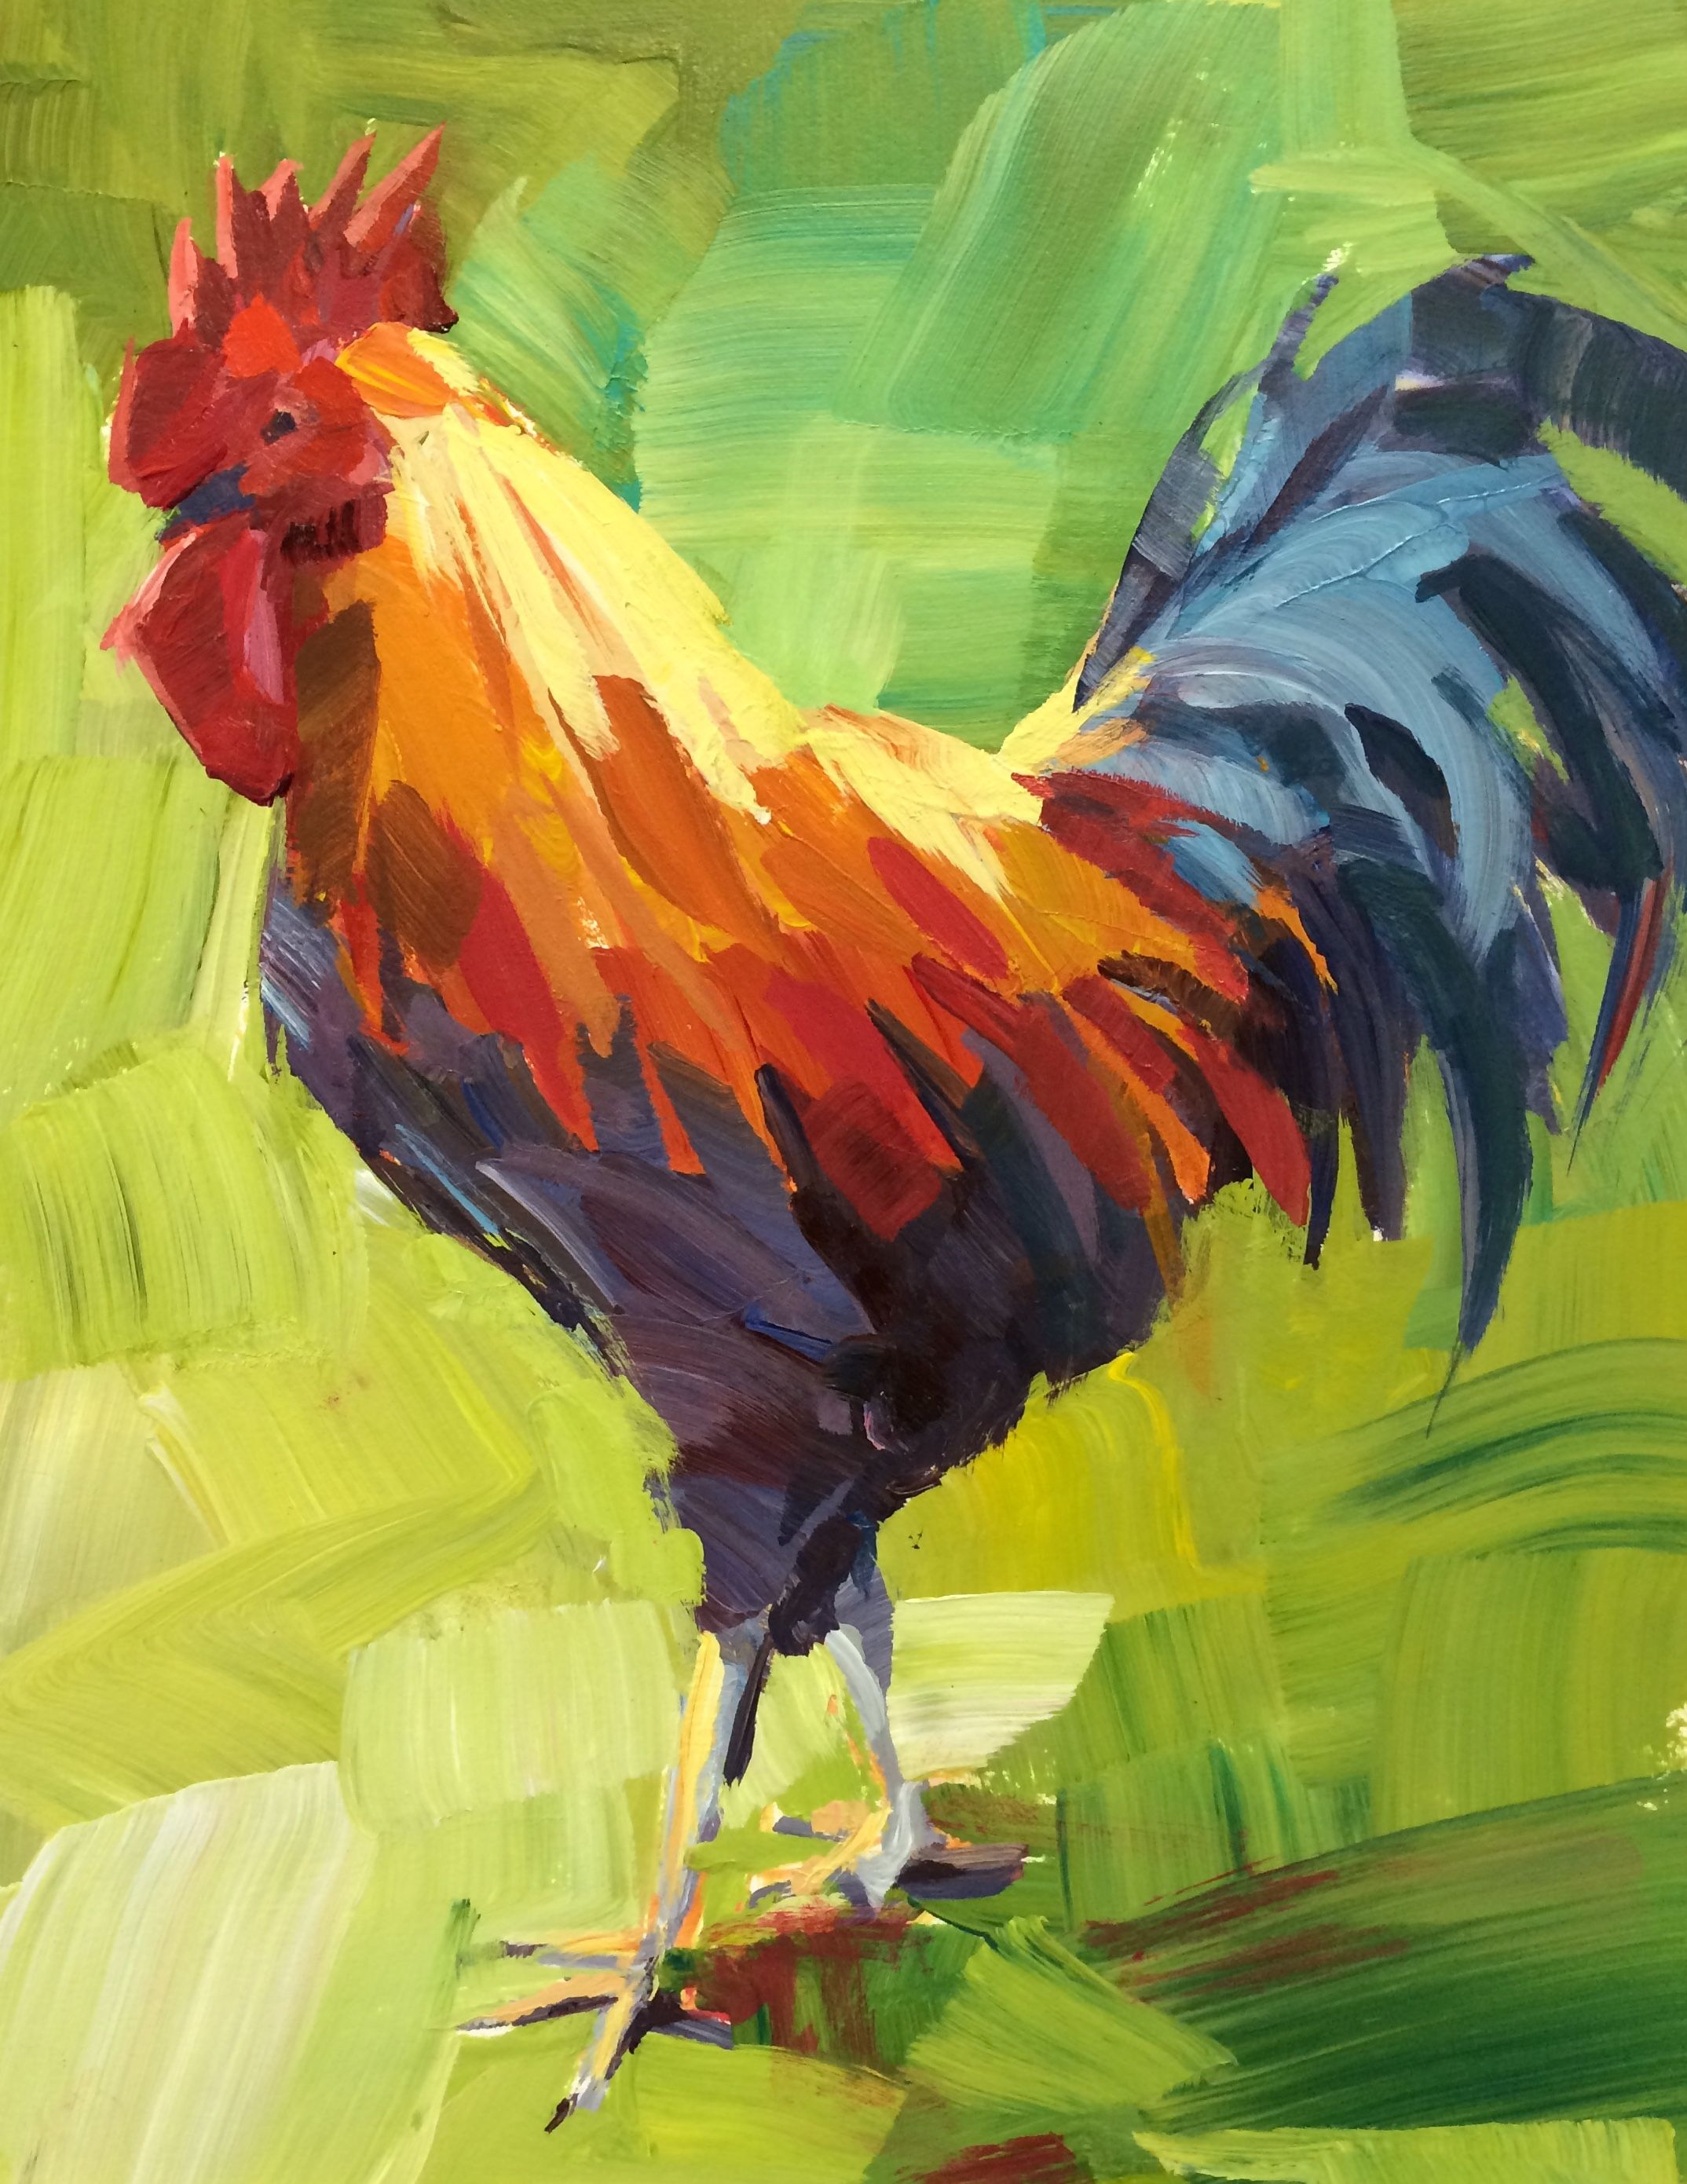 Oil painting workshop Chickens 49